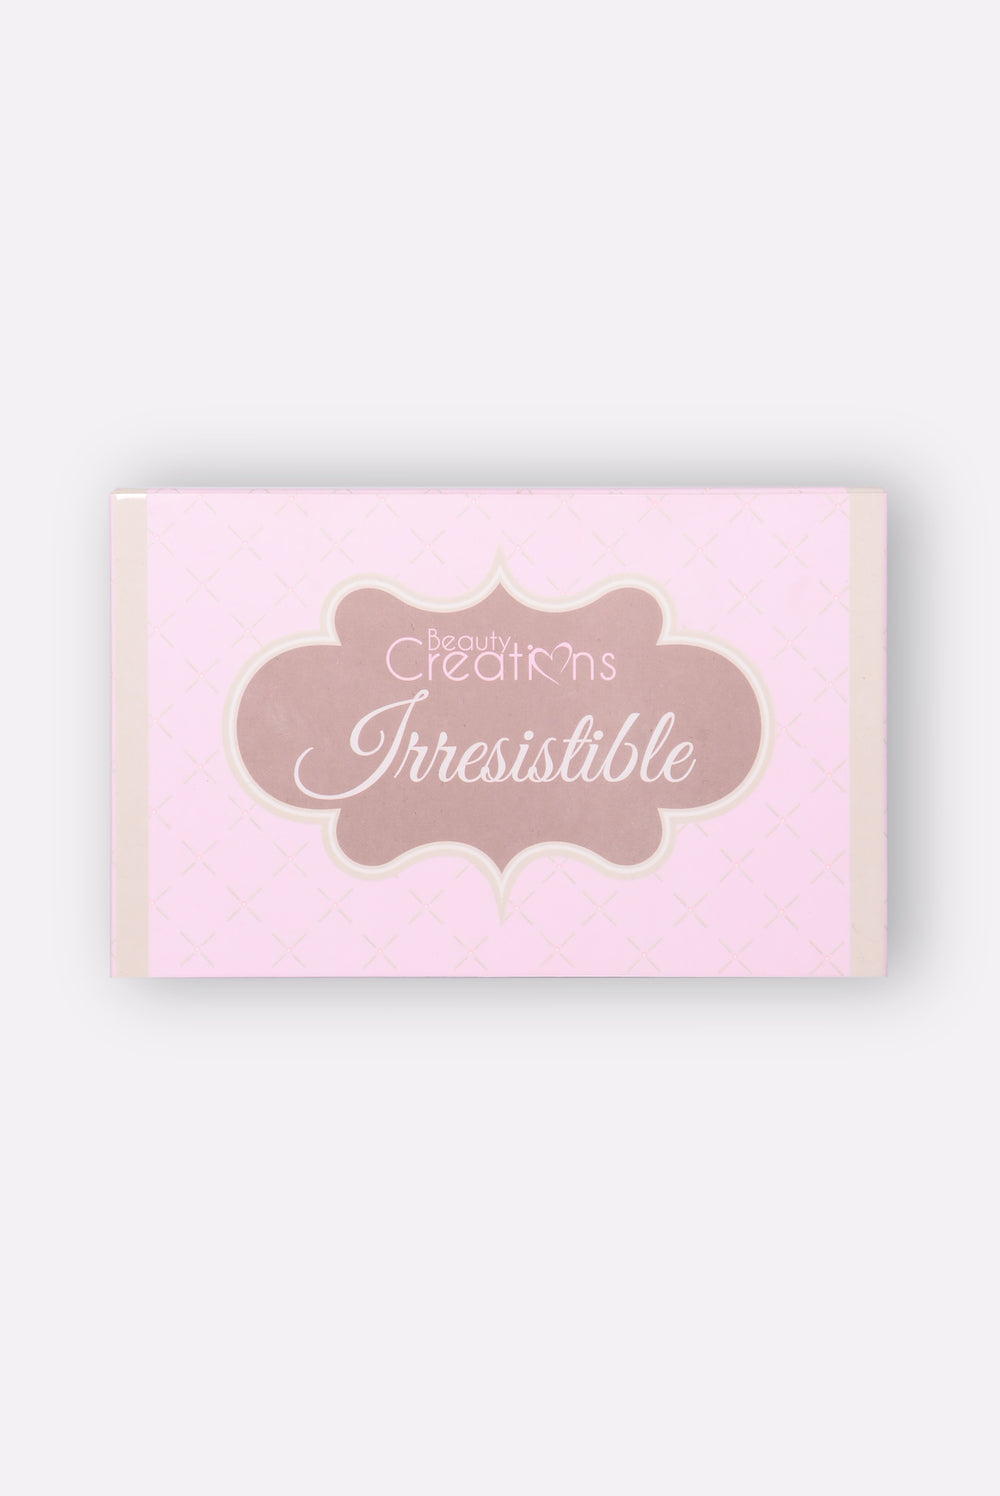 Beauty Creations: Eye Shadow Palette - Irresistible